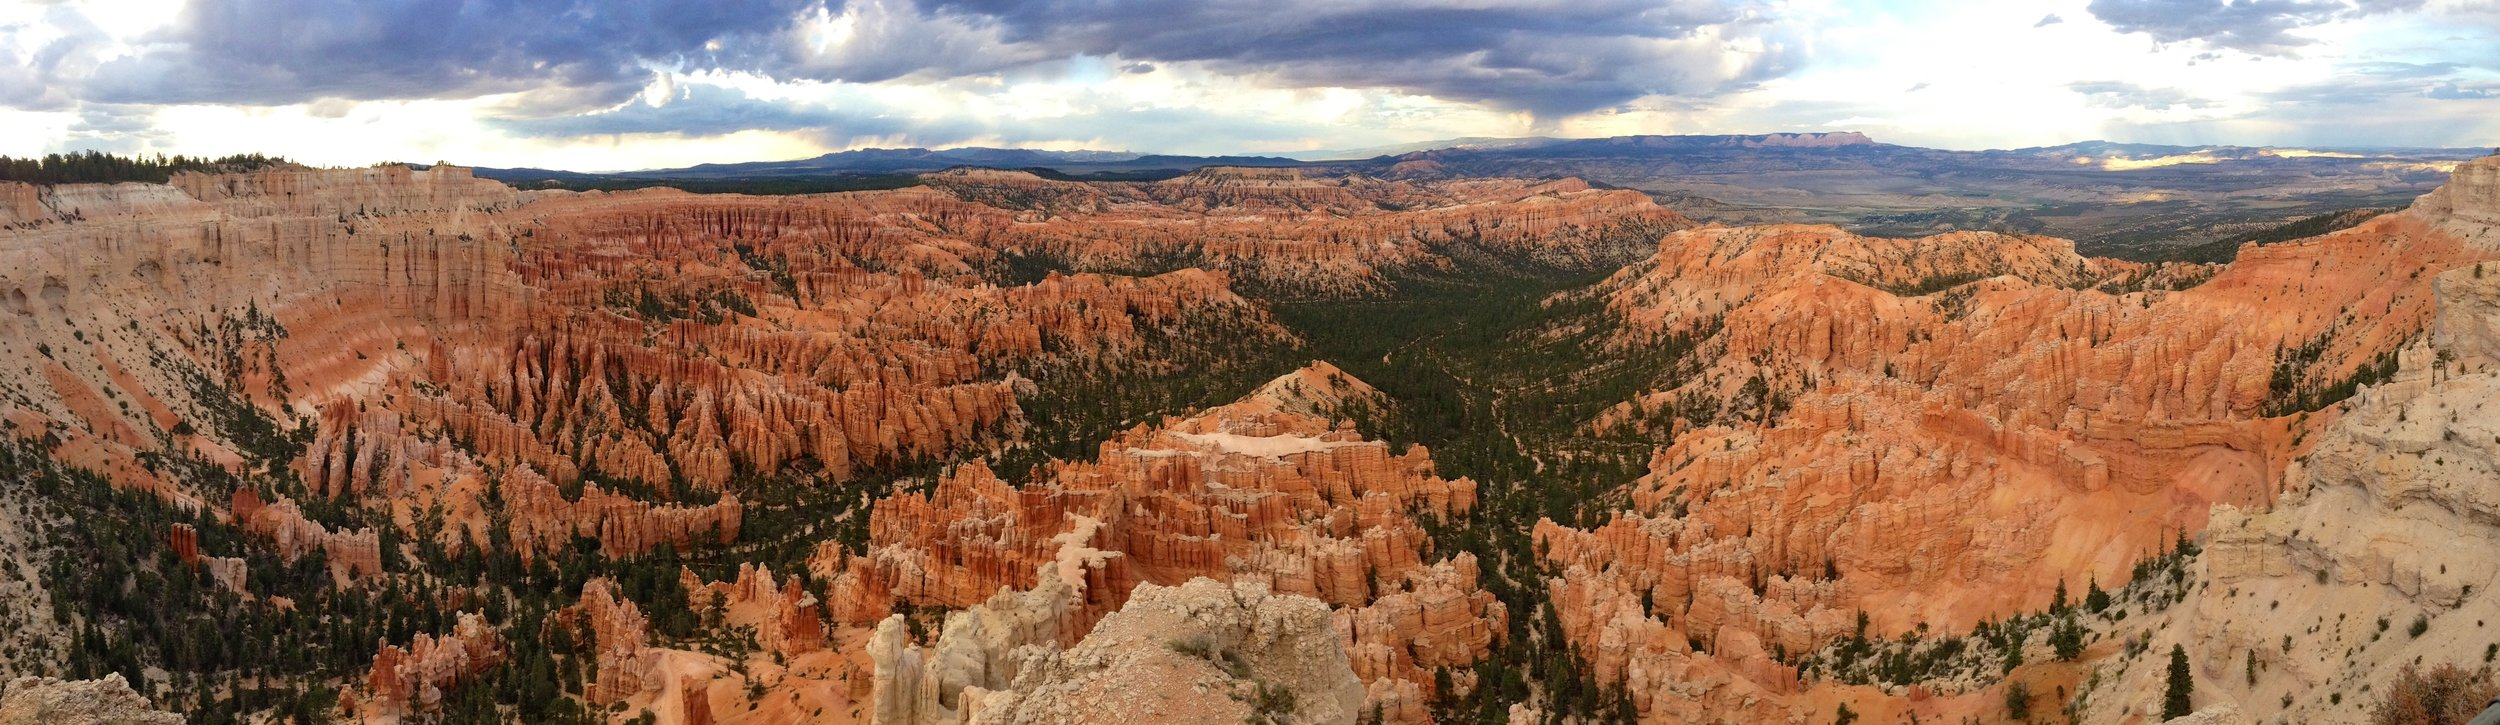 Bryce-Amphitheater-from-Bryce-Point-in-Bryce-Canyon-National-Park.jpg